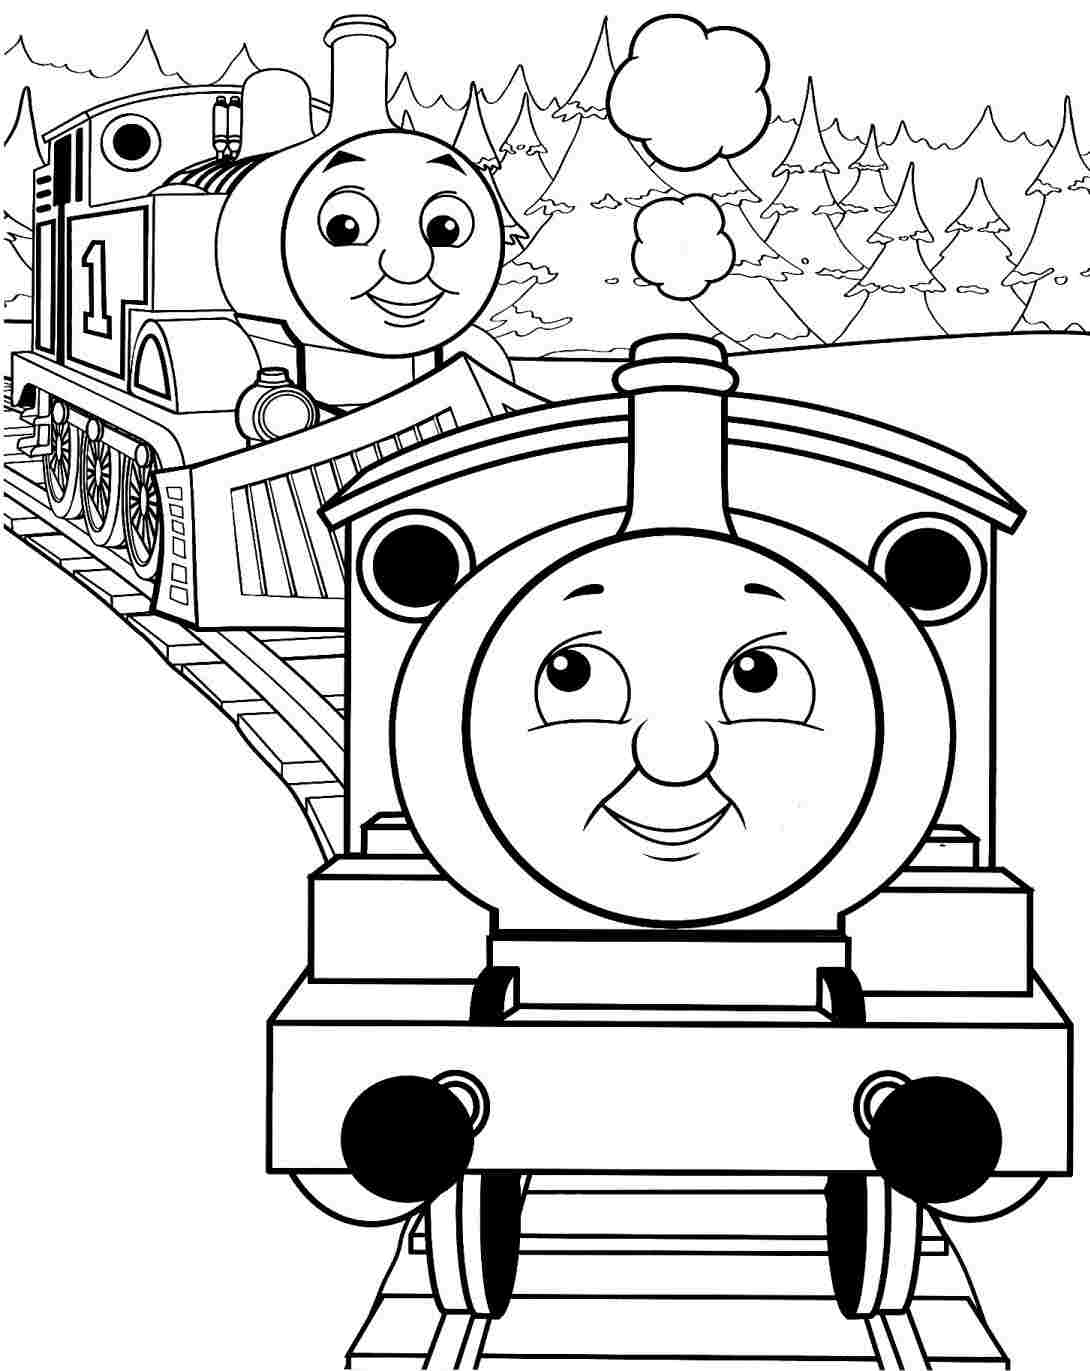 Cartoon Train Coloring Pages at GetColorings.com   Free ...